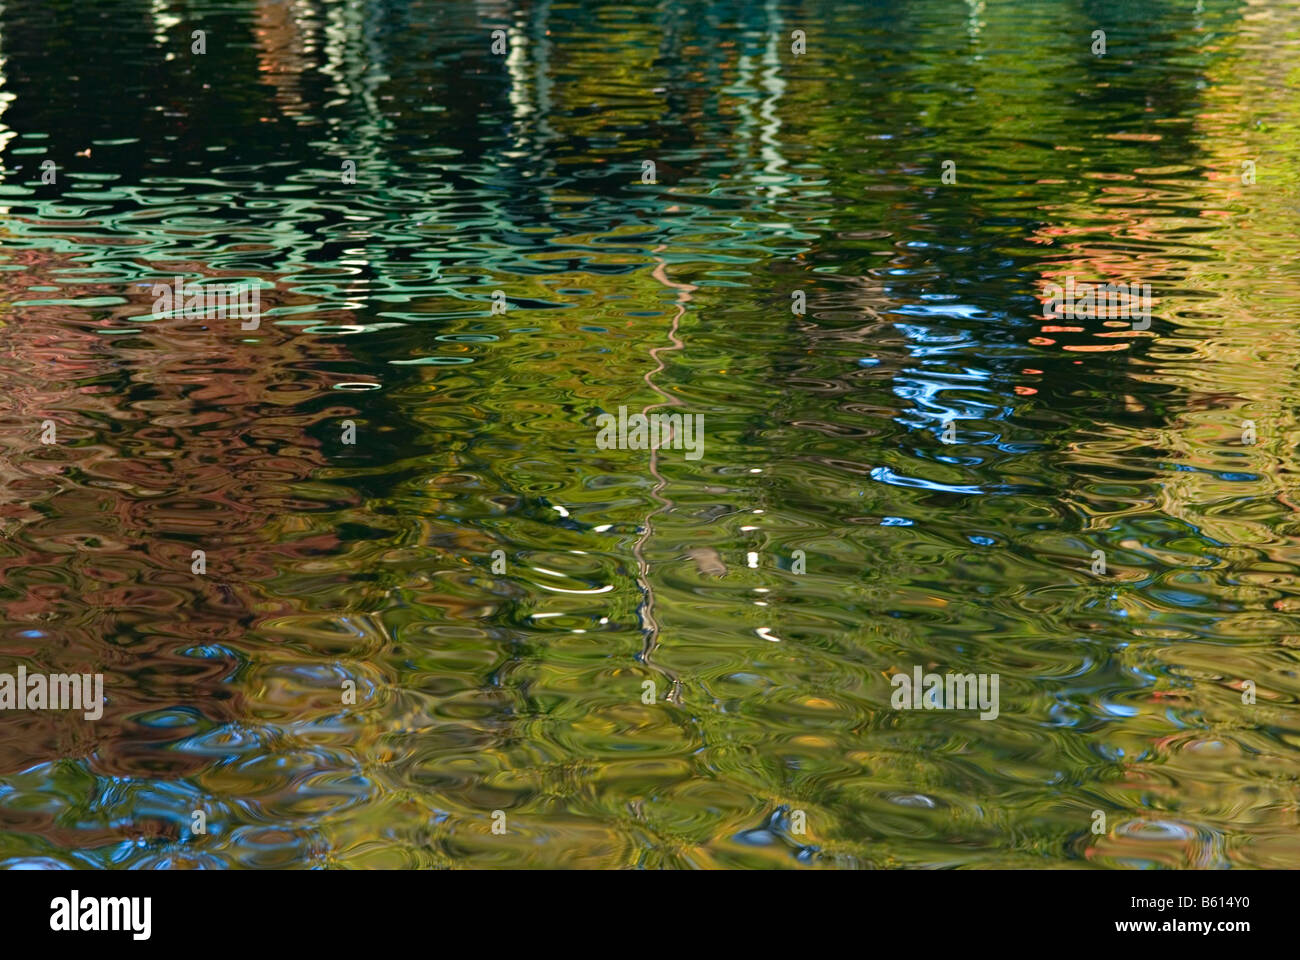 Abstract patterns, in fall colors, of trees reflected in the pond at Boston Public Garden, one of the Emerald Necklace - Stock Image